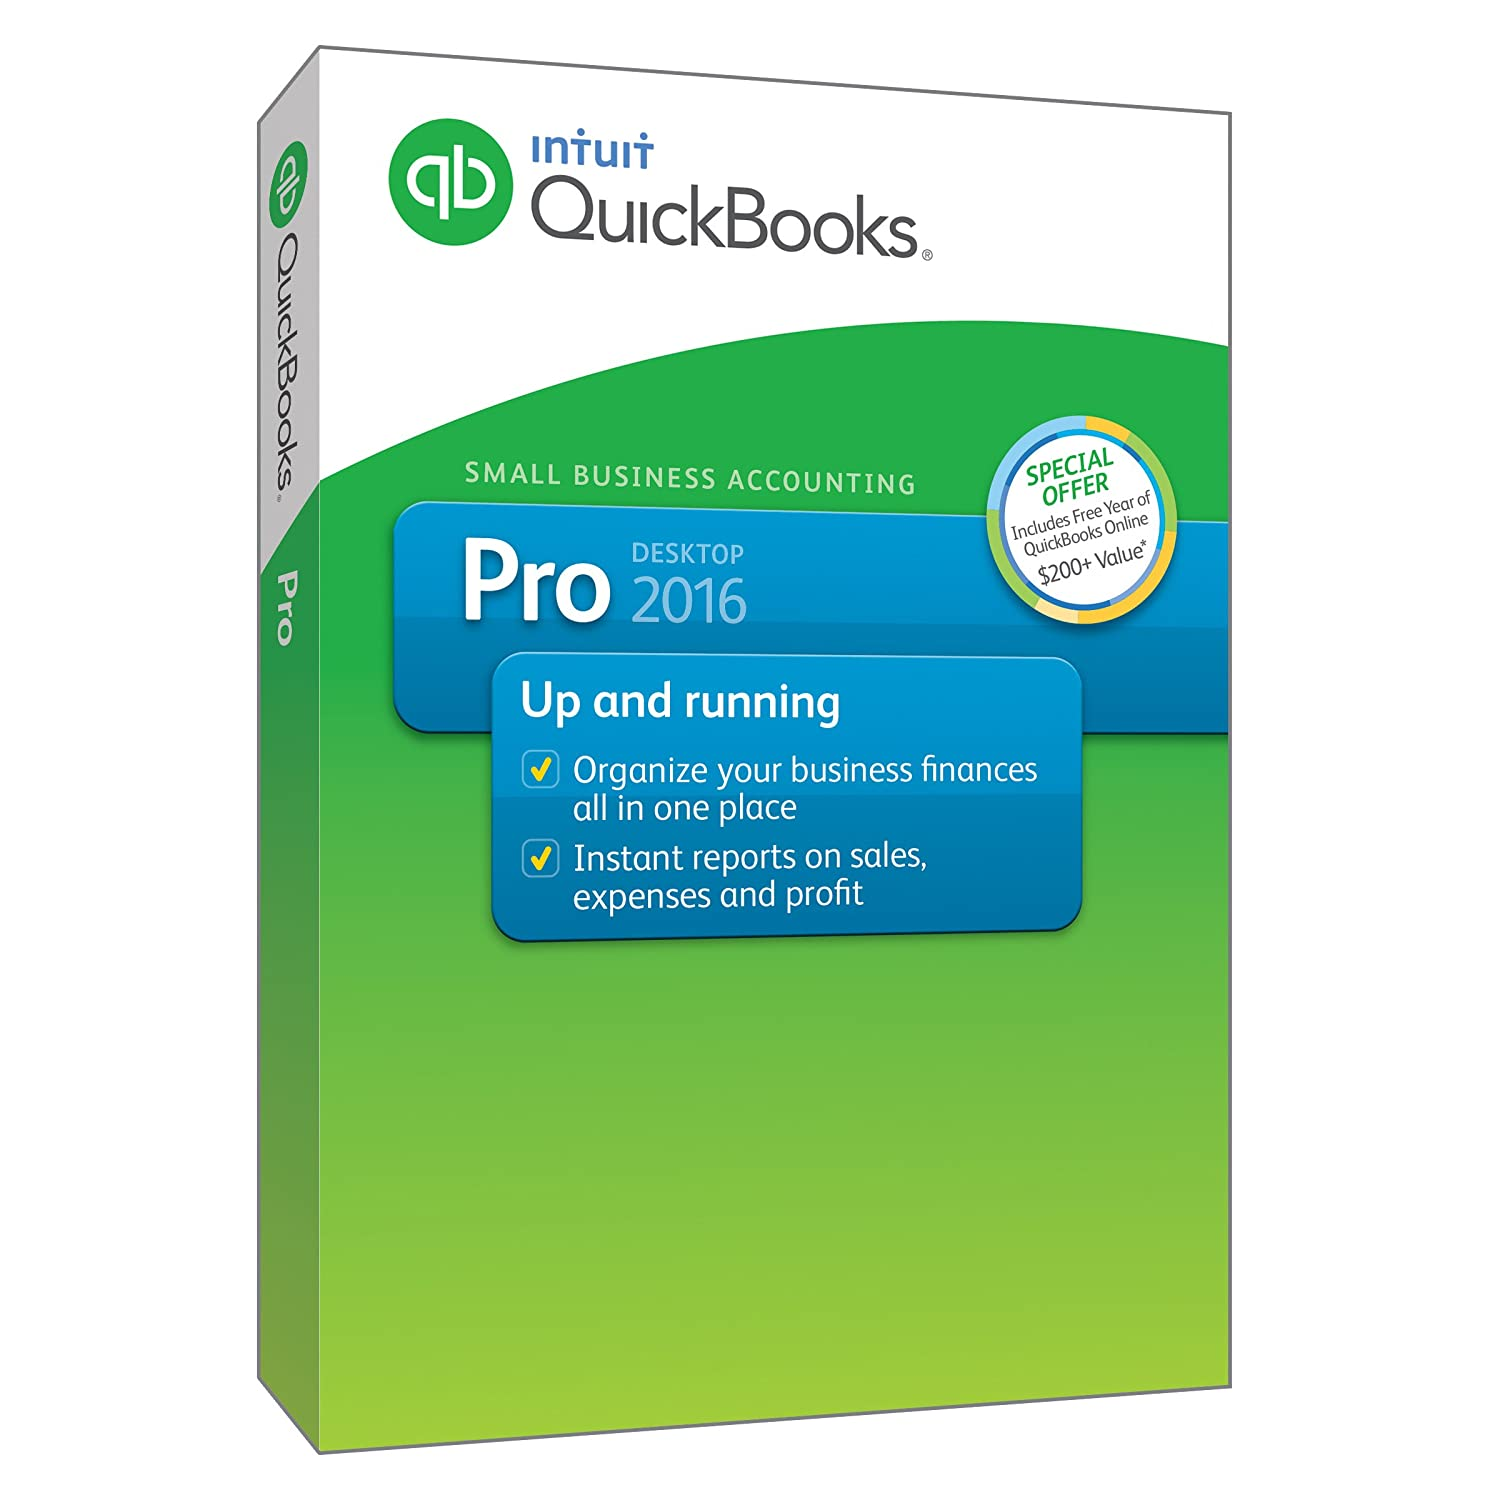 Amazon.com: QuickBooks Pro 2016 Small Business Accounting ...